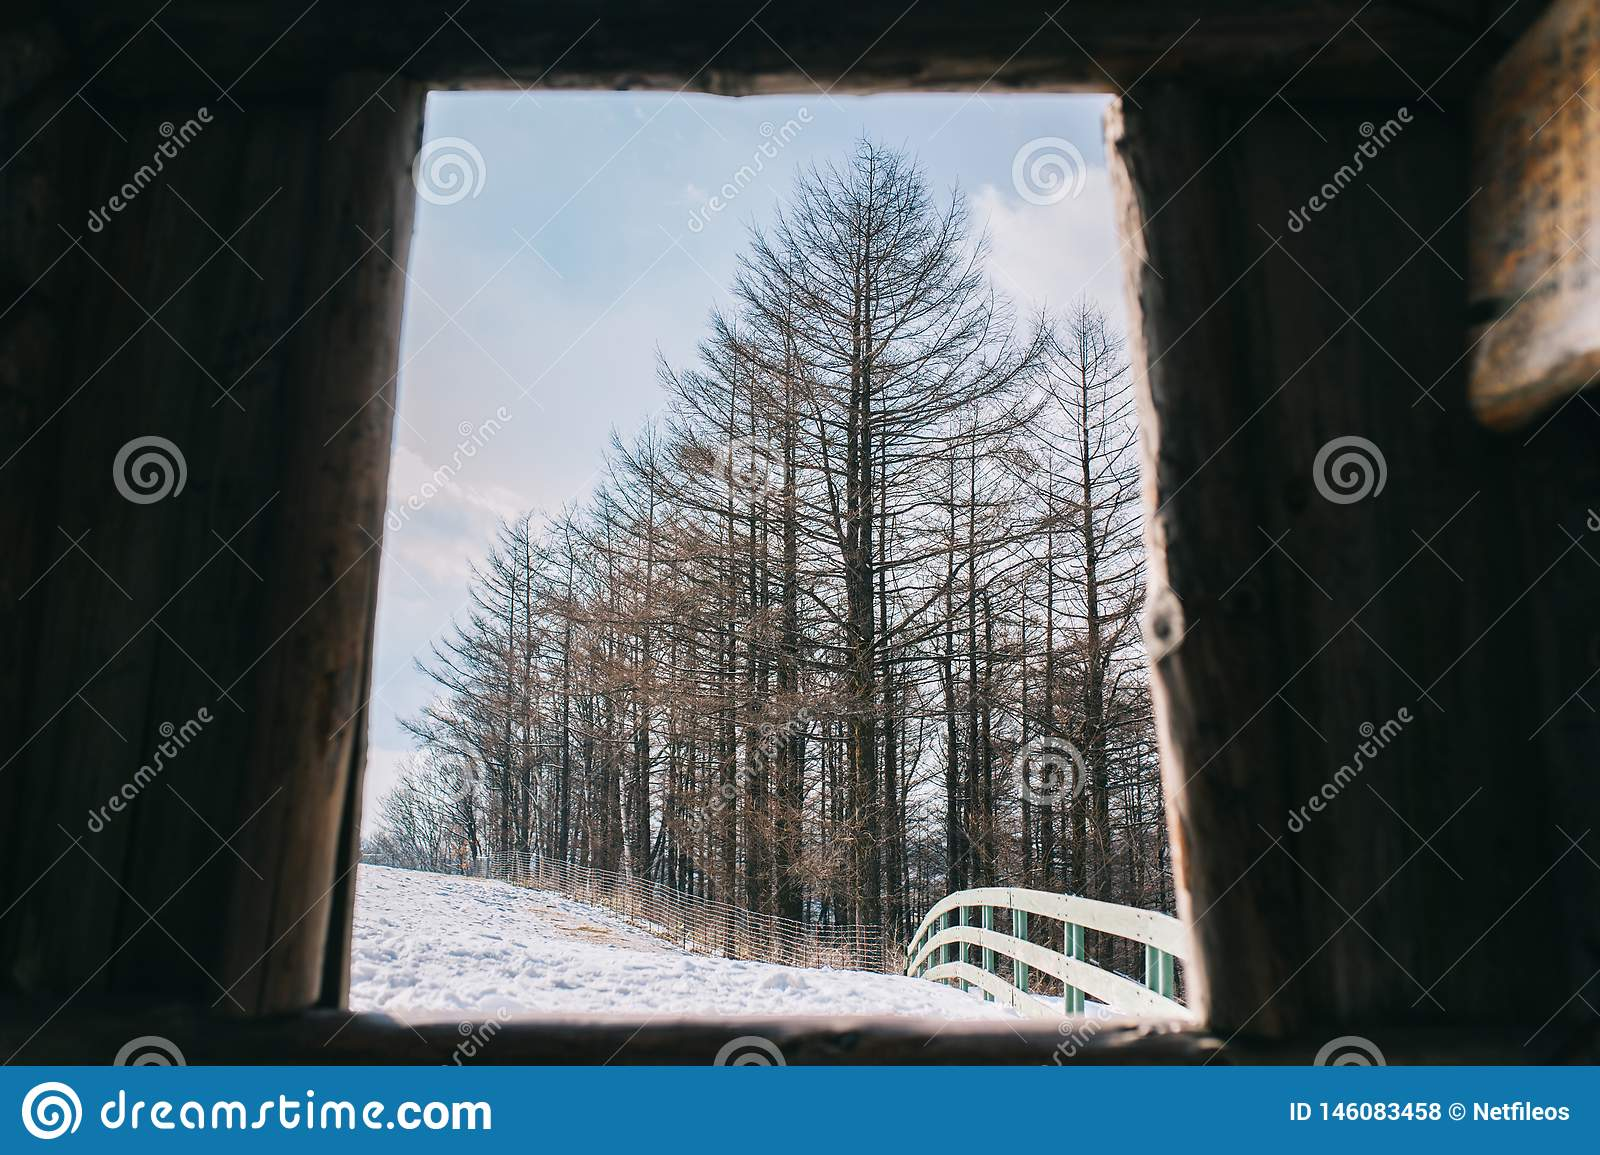 Pine trees in Winter at Daegwallyeong ,South Korea